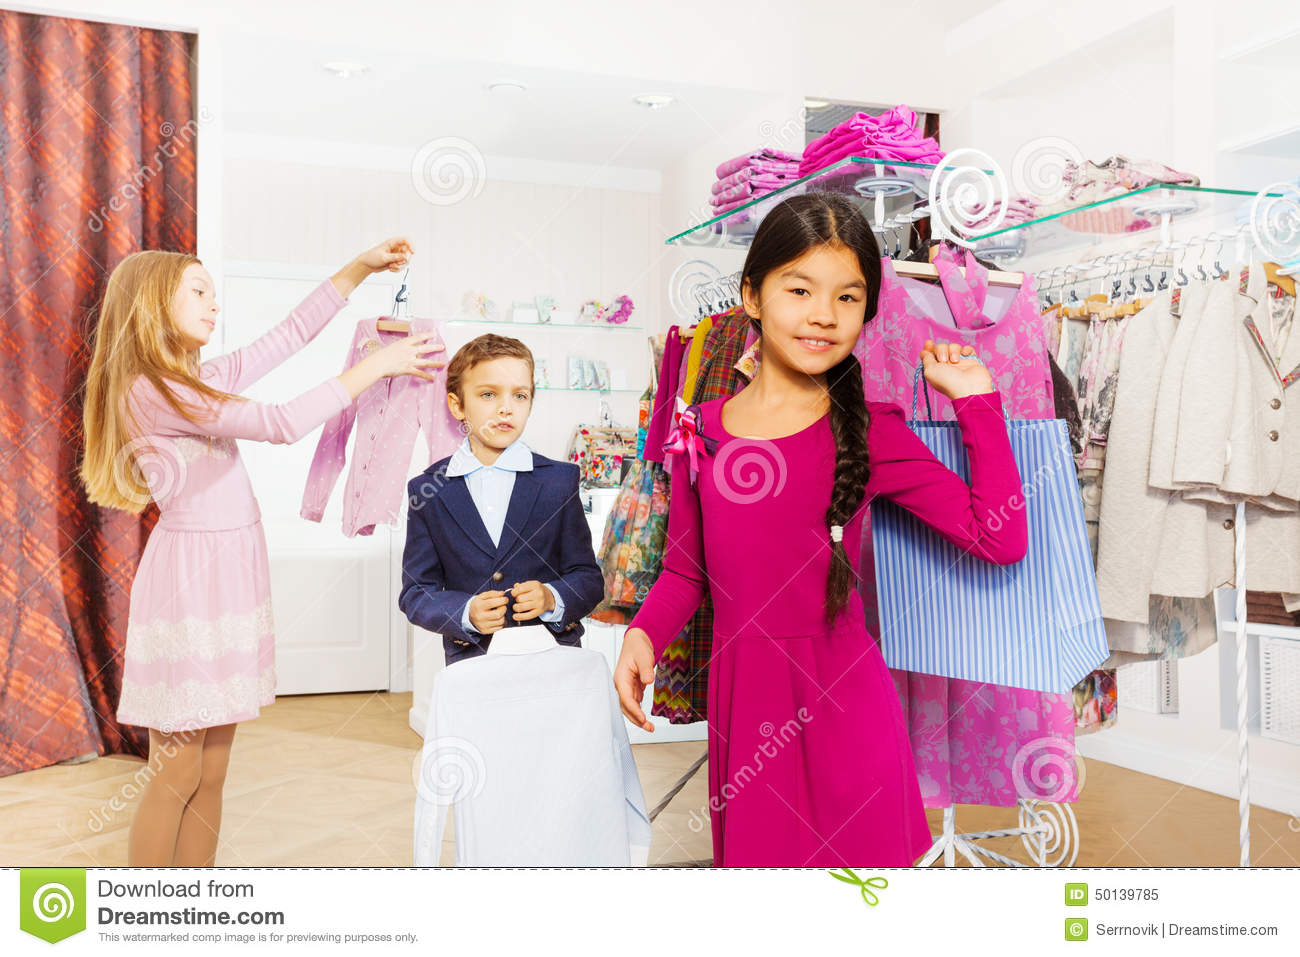 1ef7c85fc4f2 Children Standing Together In The Clothing Store Stock Image - Image ...